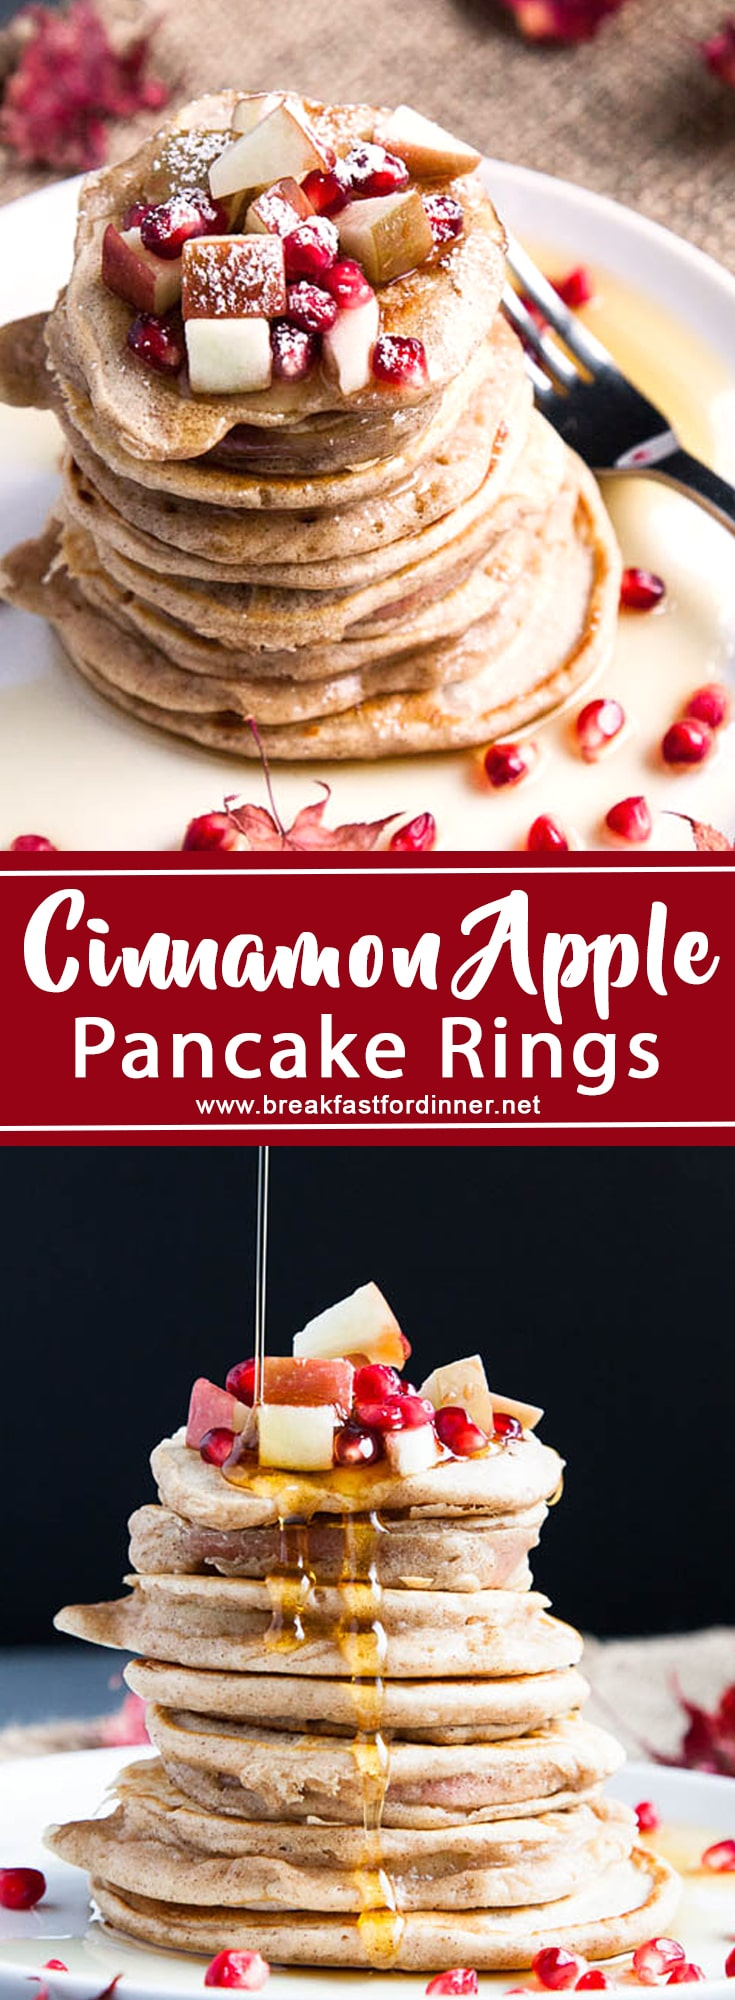 Apple Pancake Rings are sliced apples dipped in cinnamon pancake batter, and fried on either side just like a regular pancake - but with a healthy surprise inside!